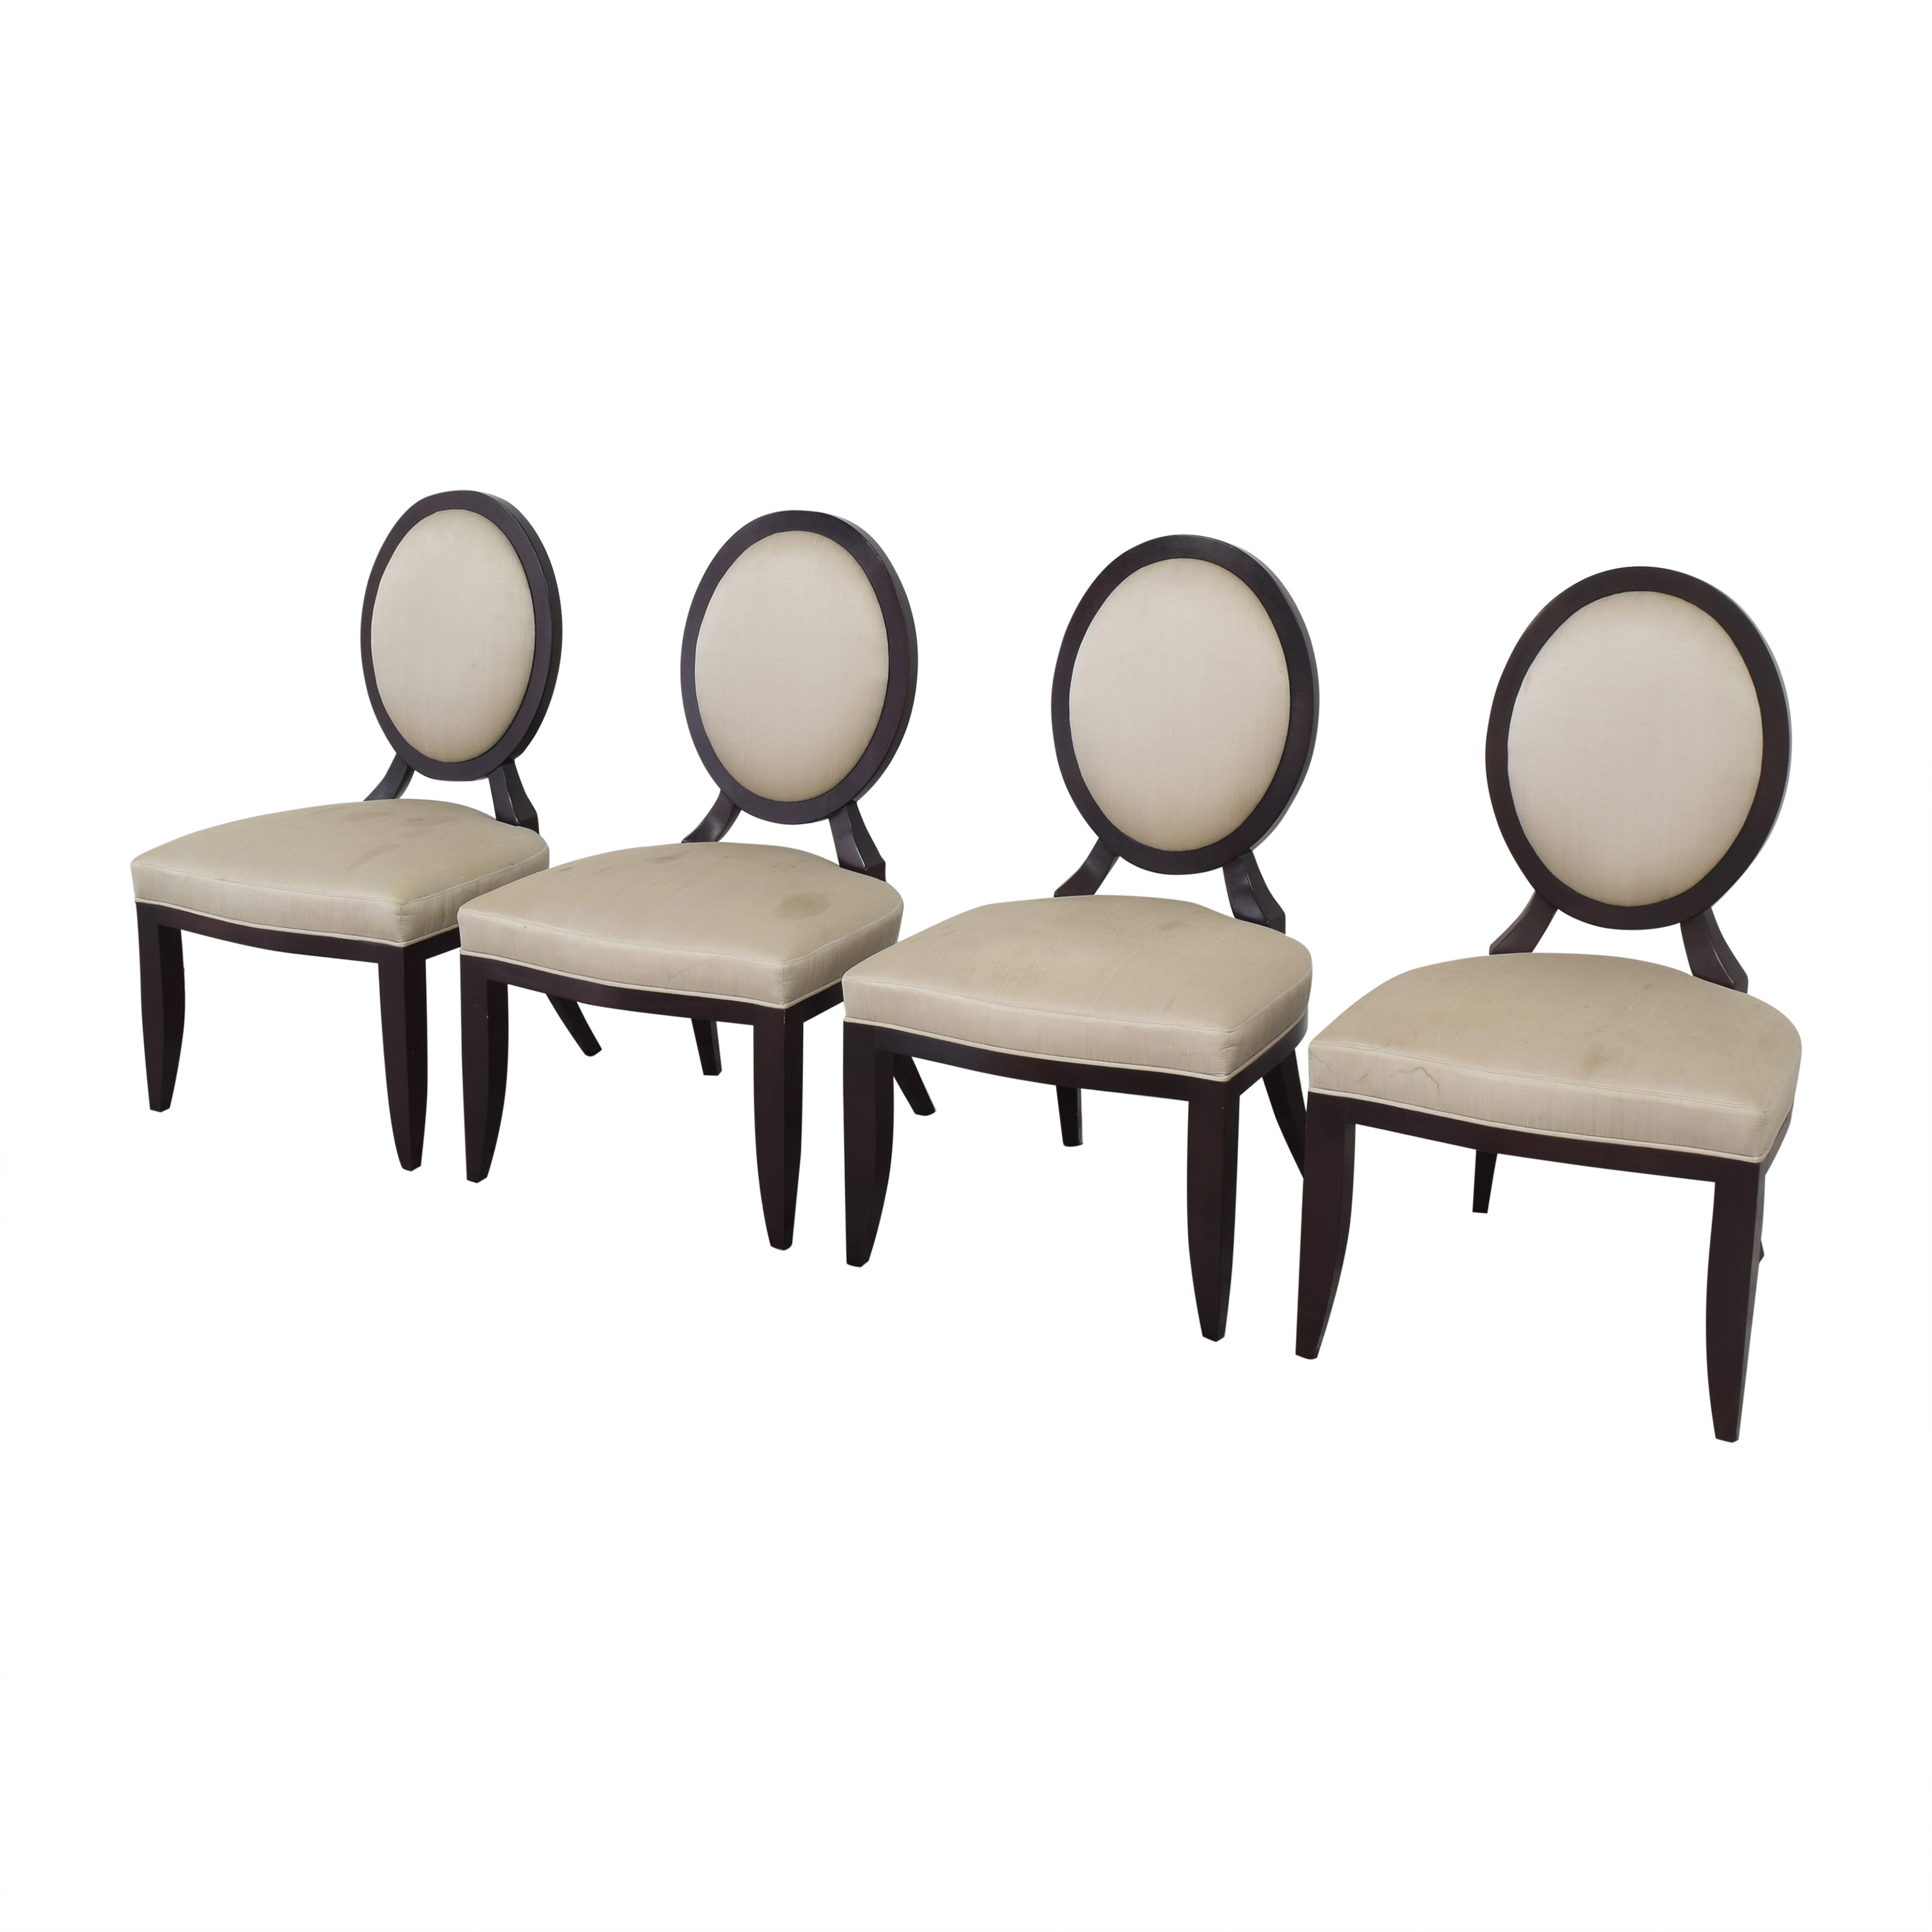 buy Baker Furniture Oval X Back Dining Chairs Baker Furniture Chairs